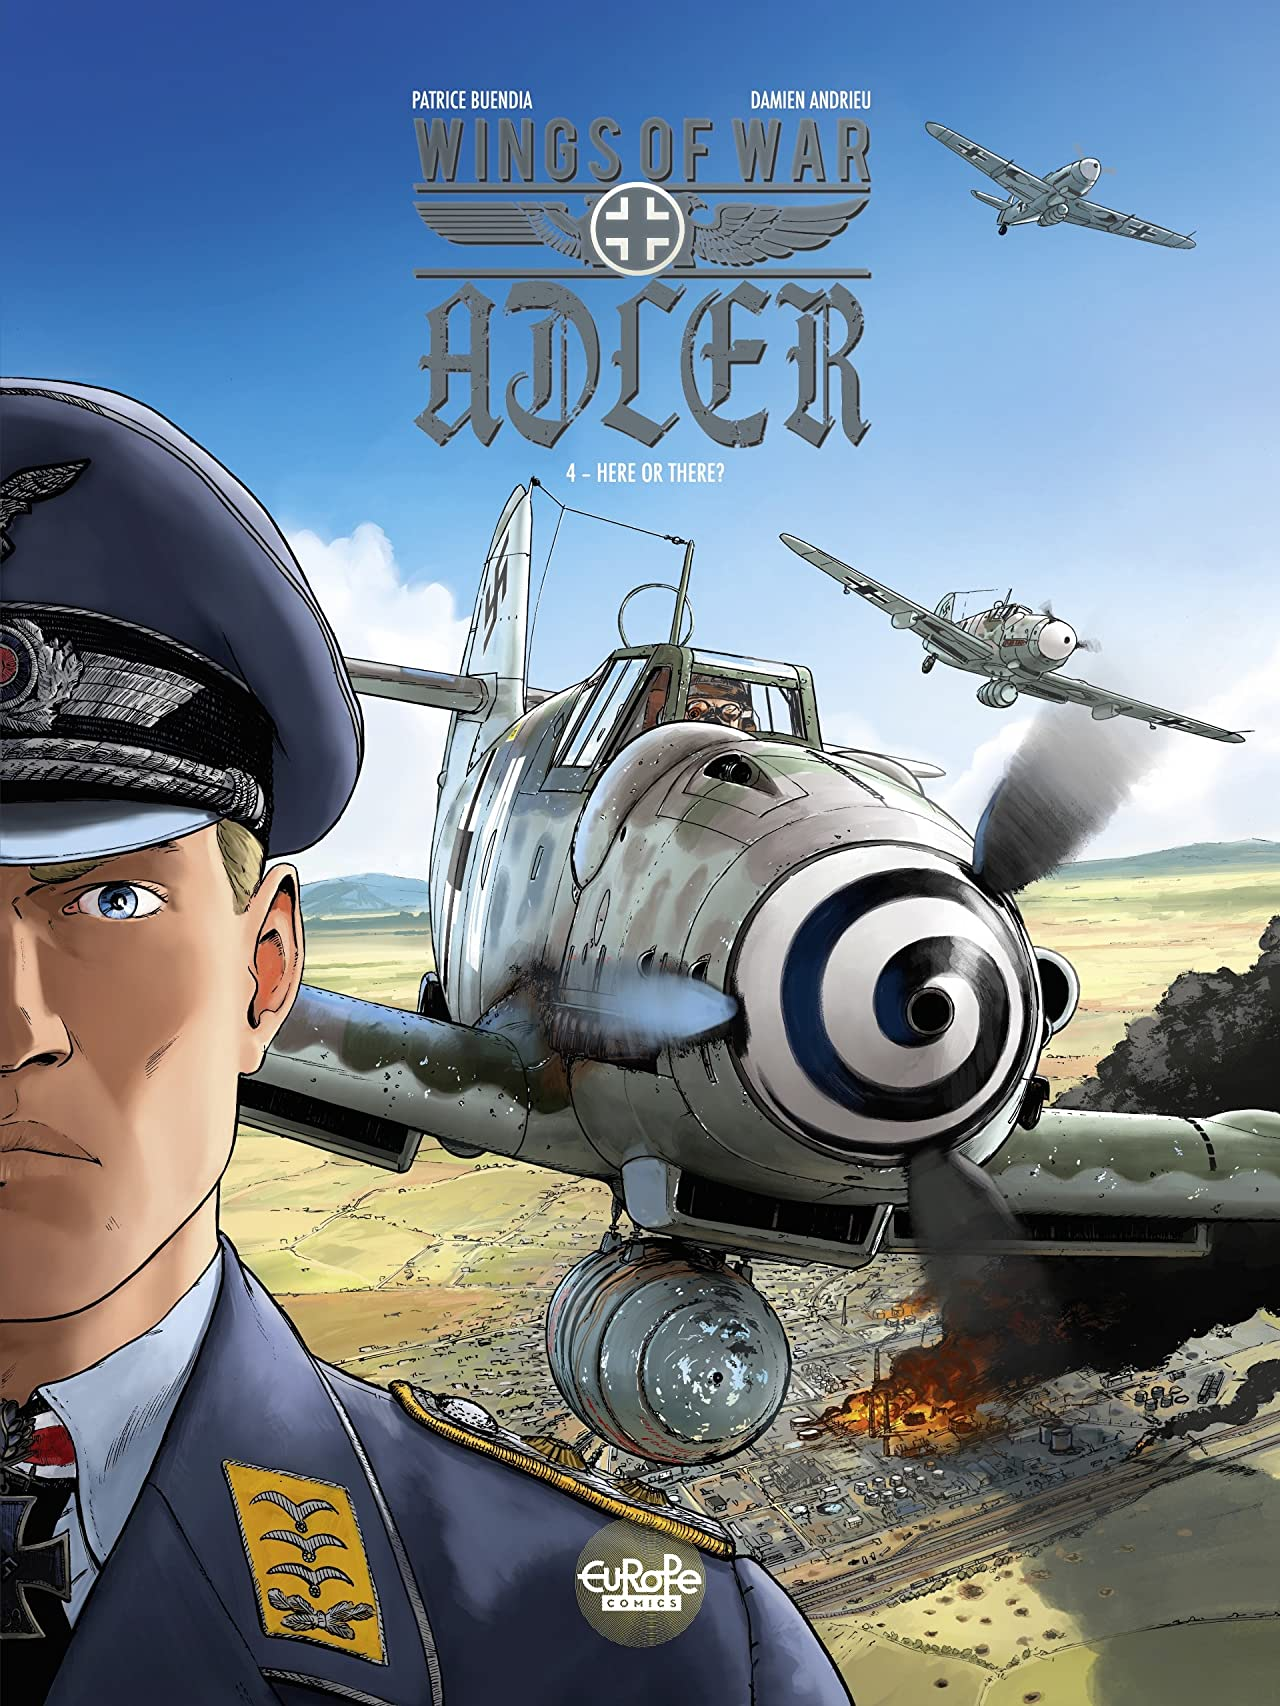 Wings of War Adler Vol. 4: Here or There?